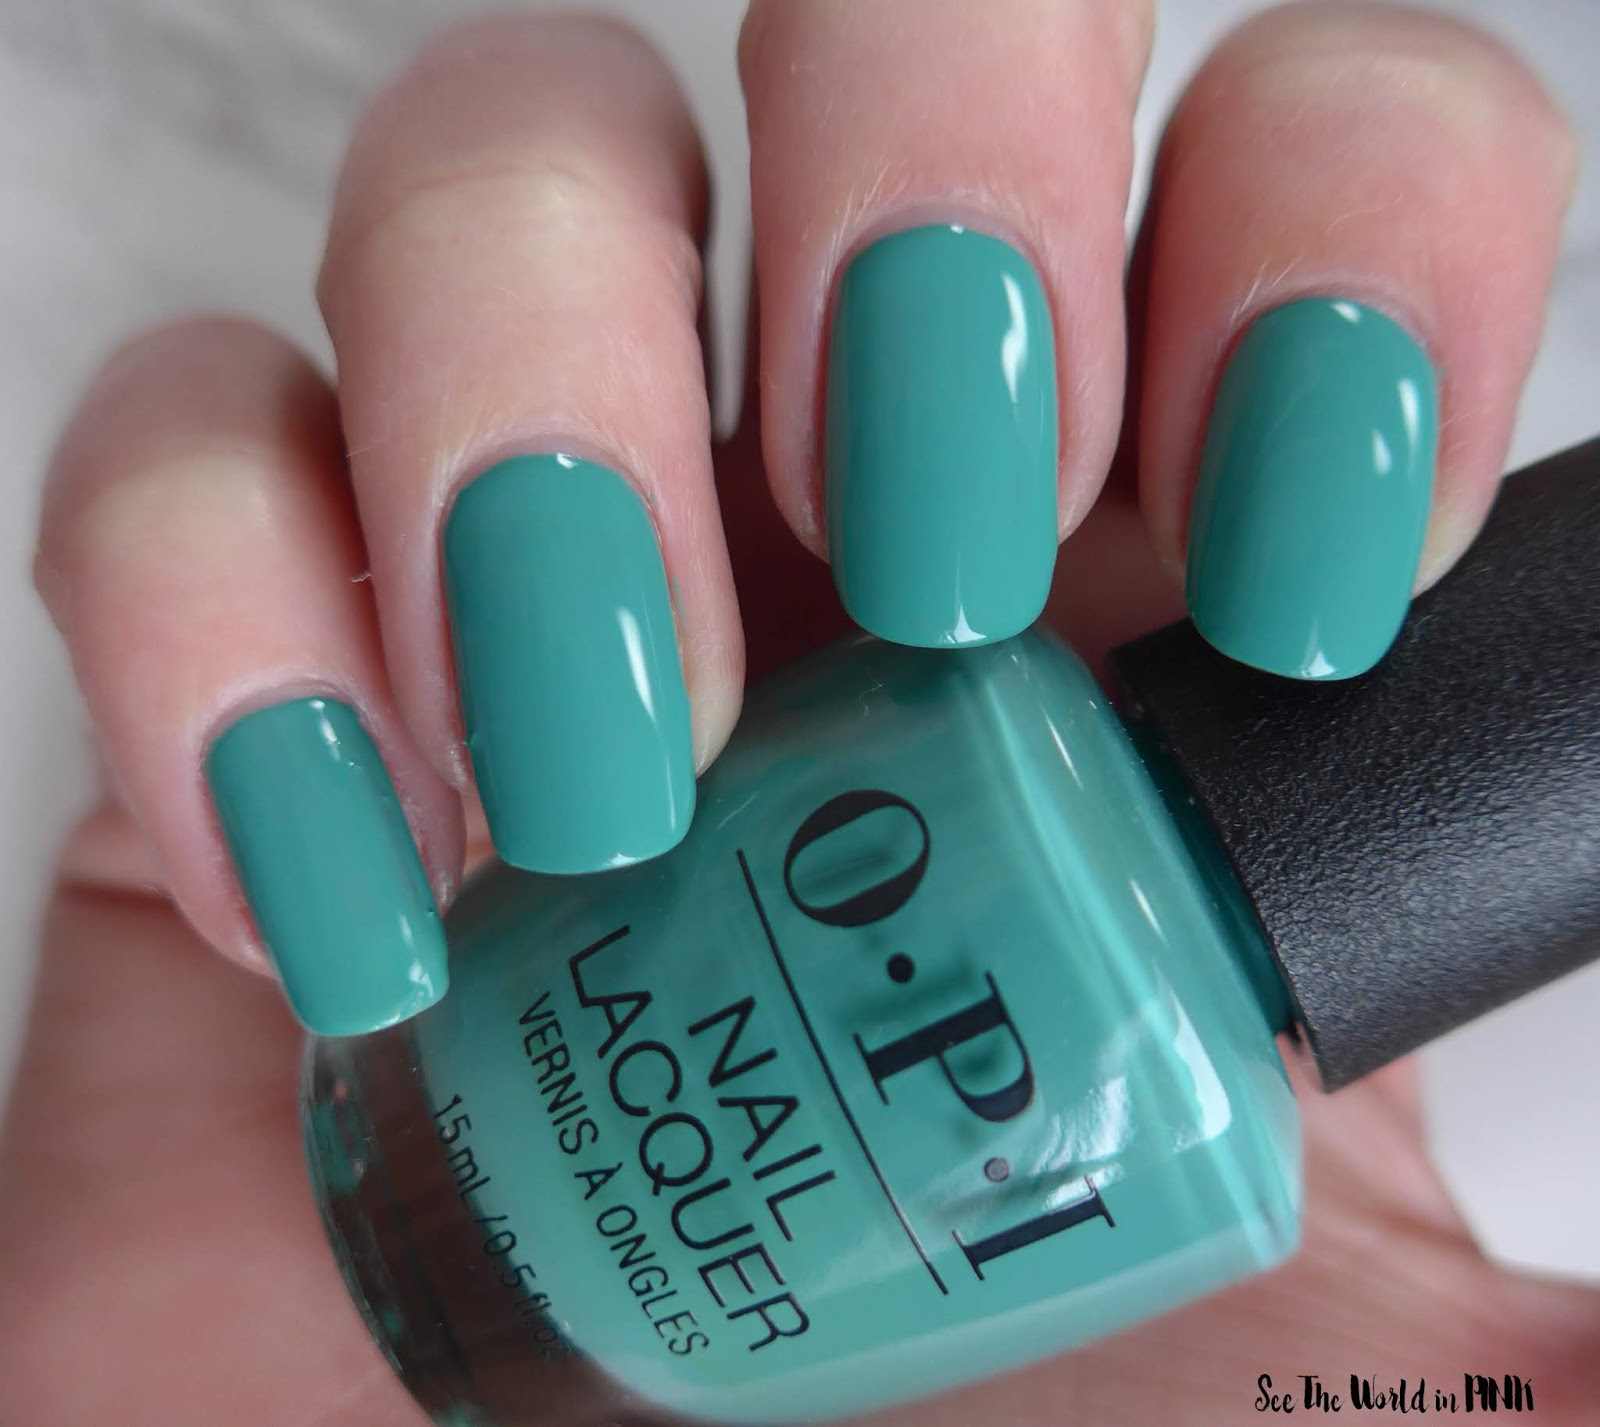 Manicure Monday - OPI Tokyo Collection for Spring and Summer 2019 I'm on a Sushi Roll